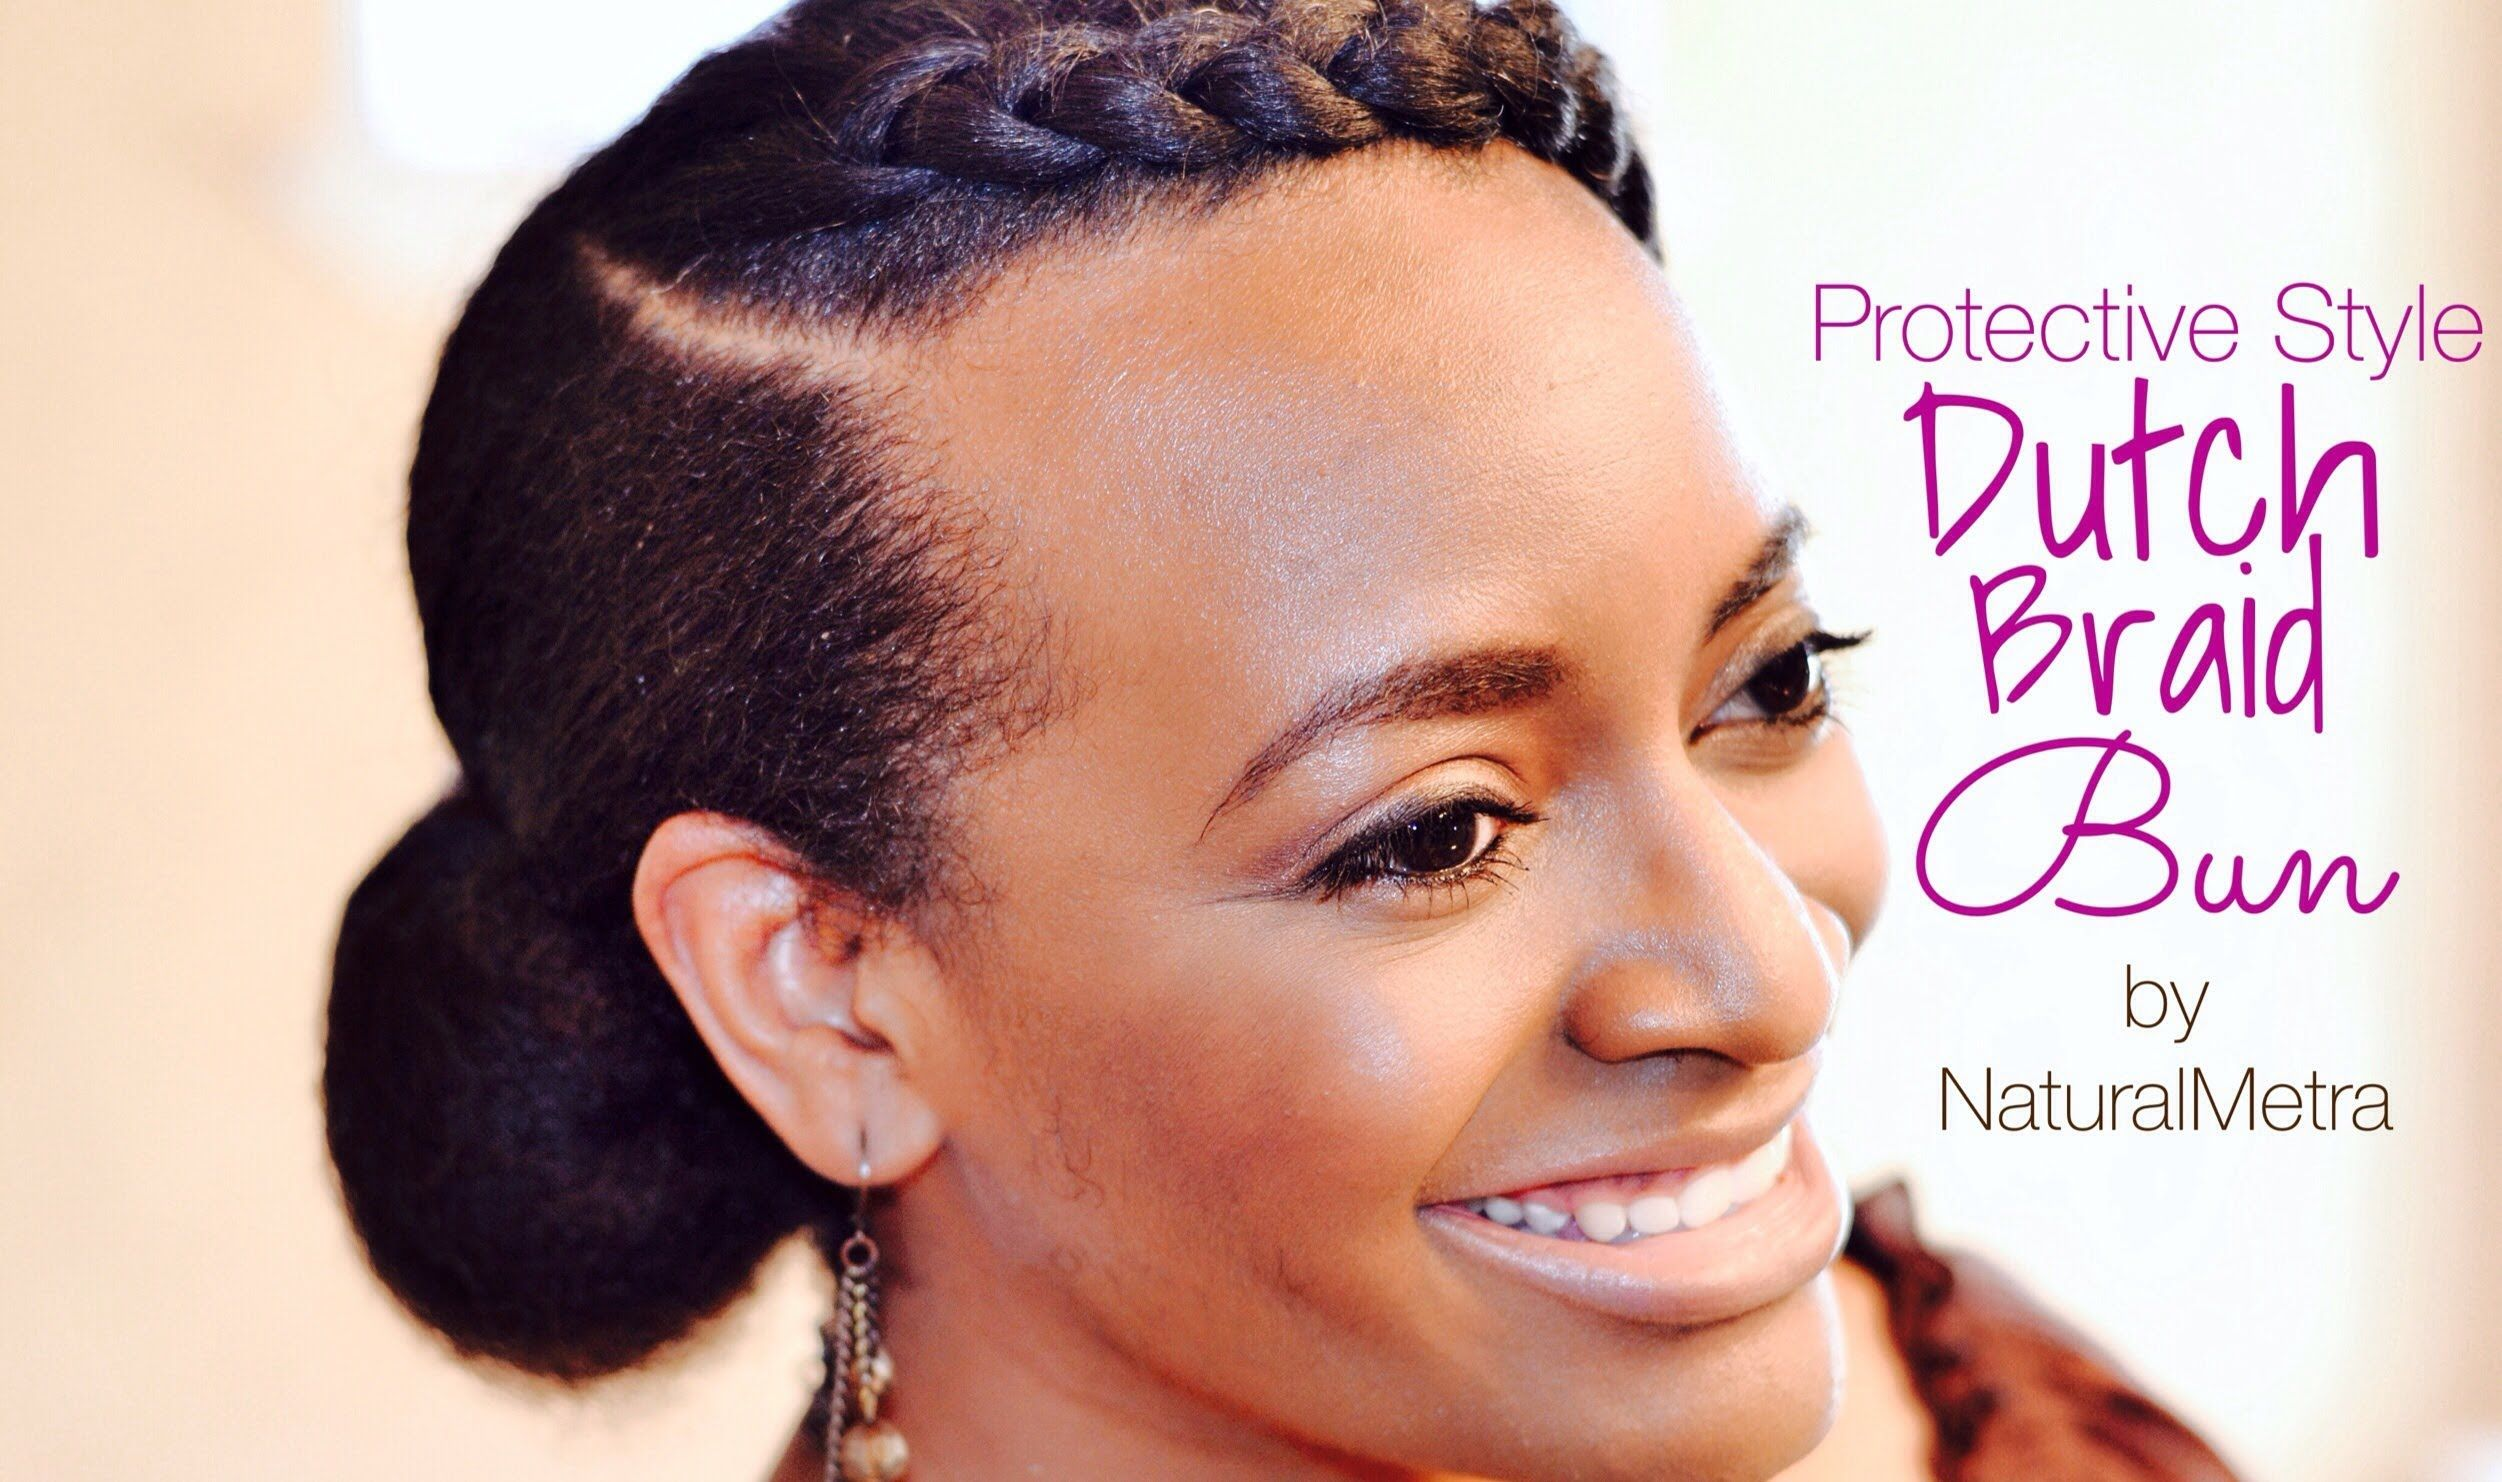 Hey beauties this is a simple yet elegant protective style for